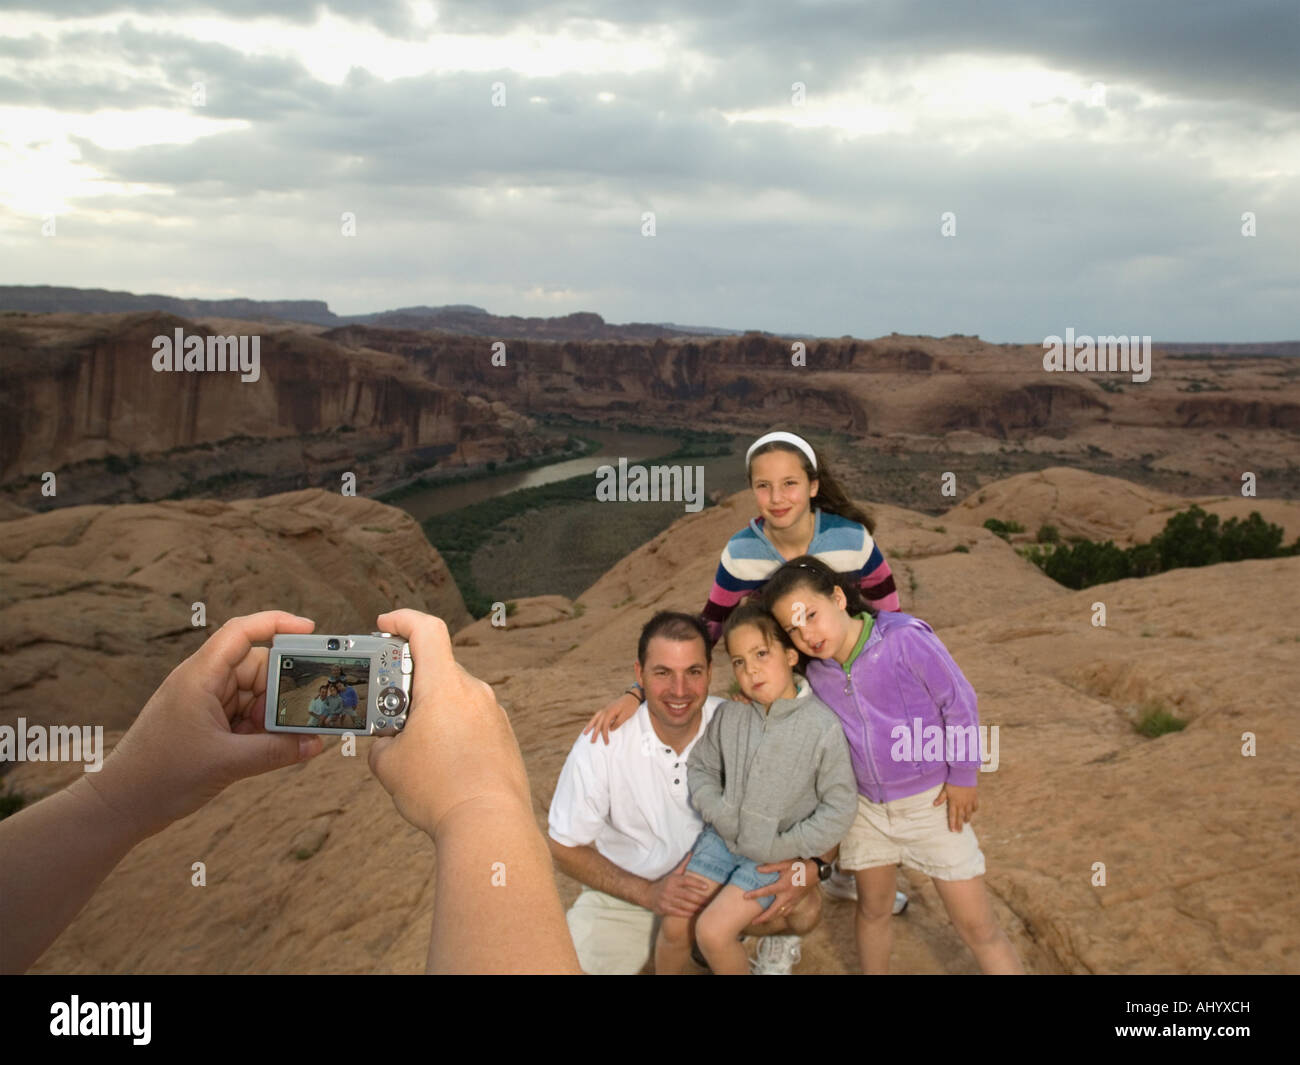 Father and daughters having photograph taken - Stock Image